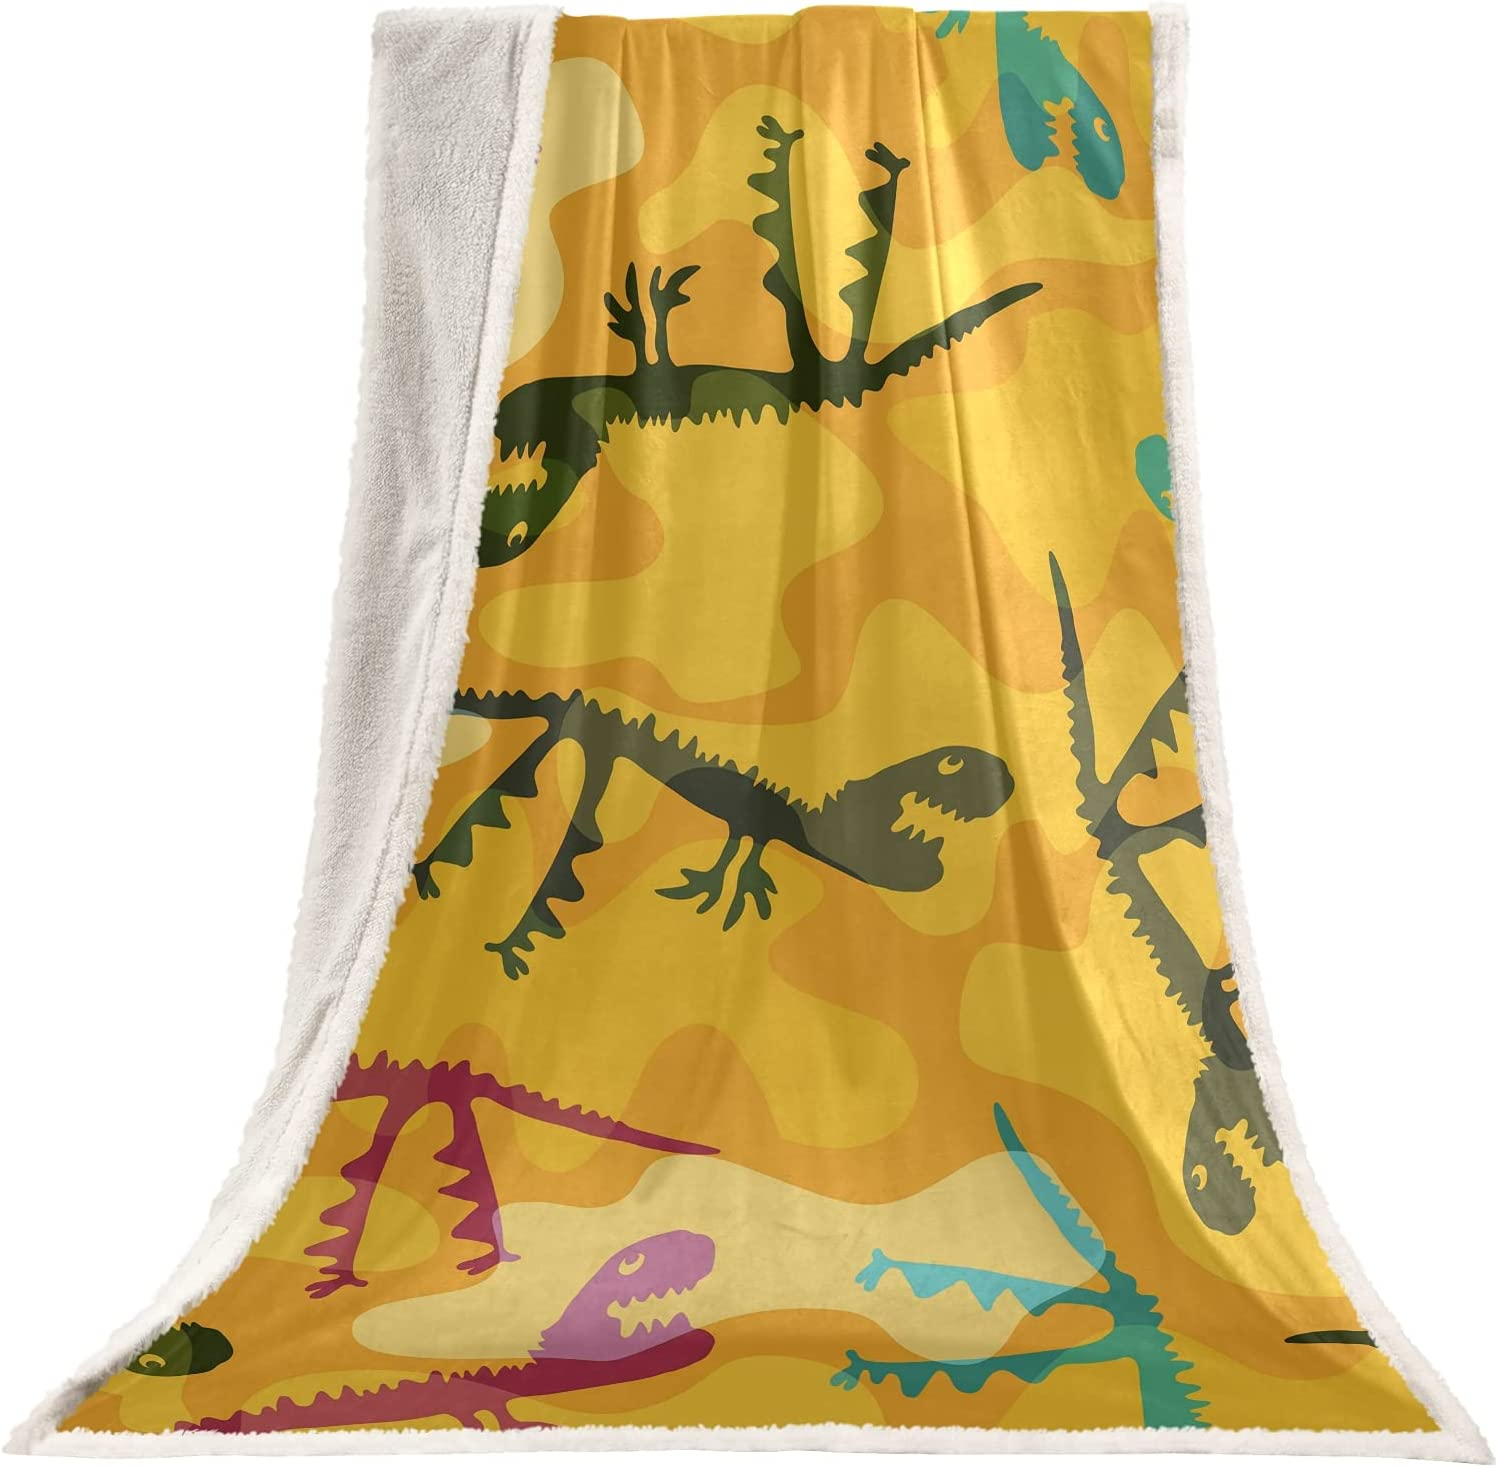 SUABO Ranking integrated 1st place Camo Dinosaur Throw Blanket for Be Boston Mall Soft Girls Boys Adults